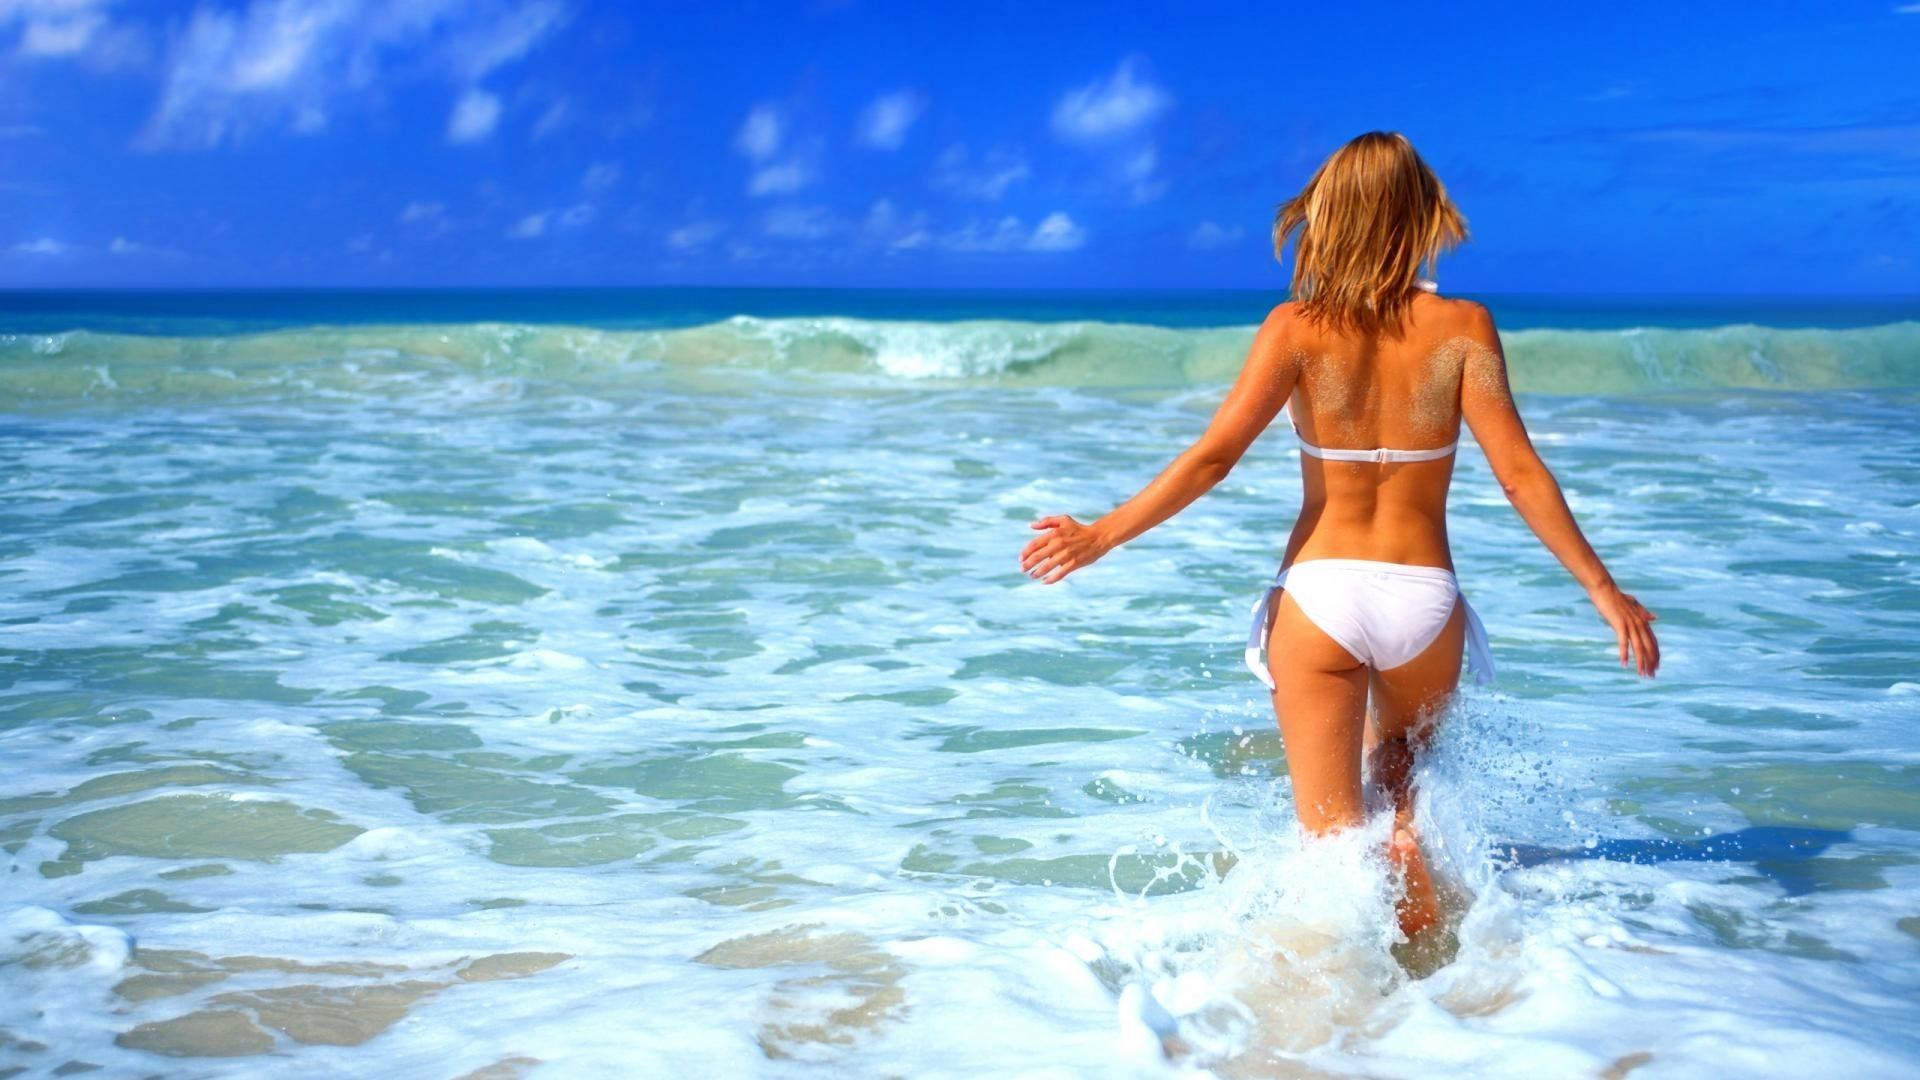 94 Bikini Hd Wallpapers Background Images Wallpaper Abyss